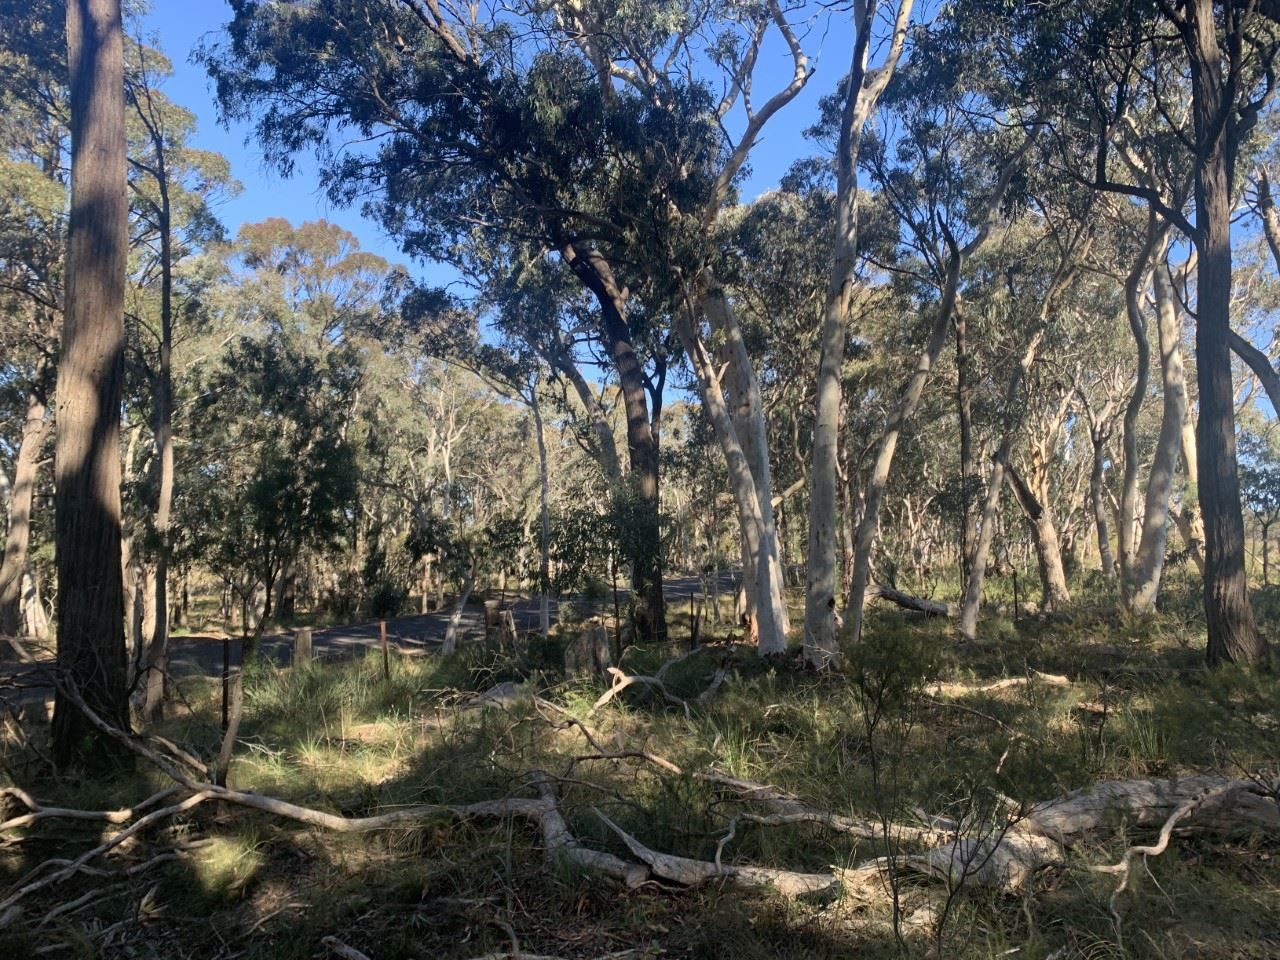 809 Aarons Pass Road, Carcalgong, Mudgee NSW 2850, Image 0